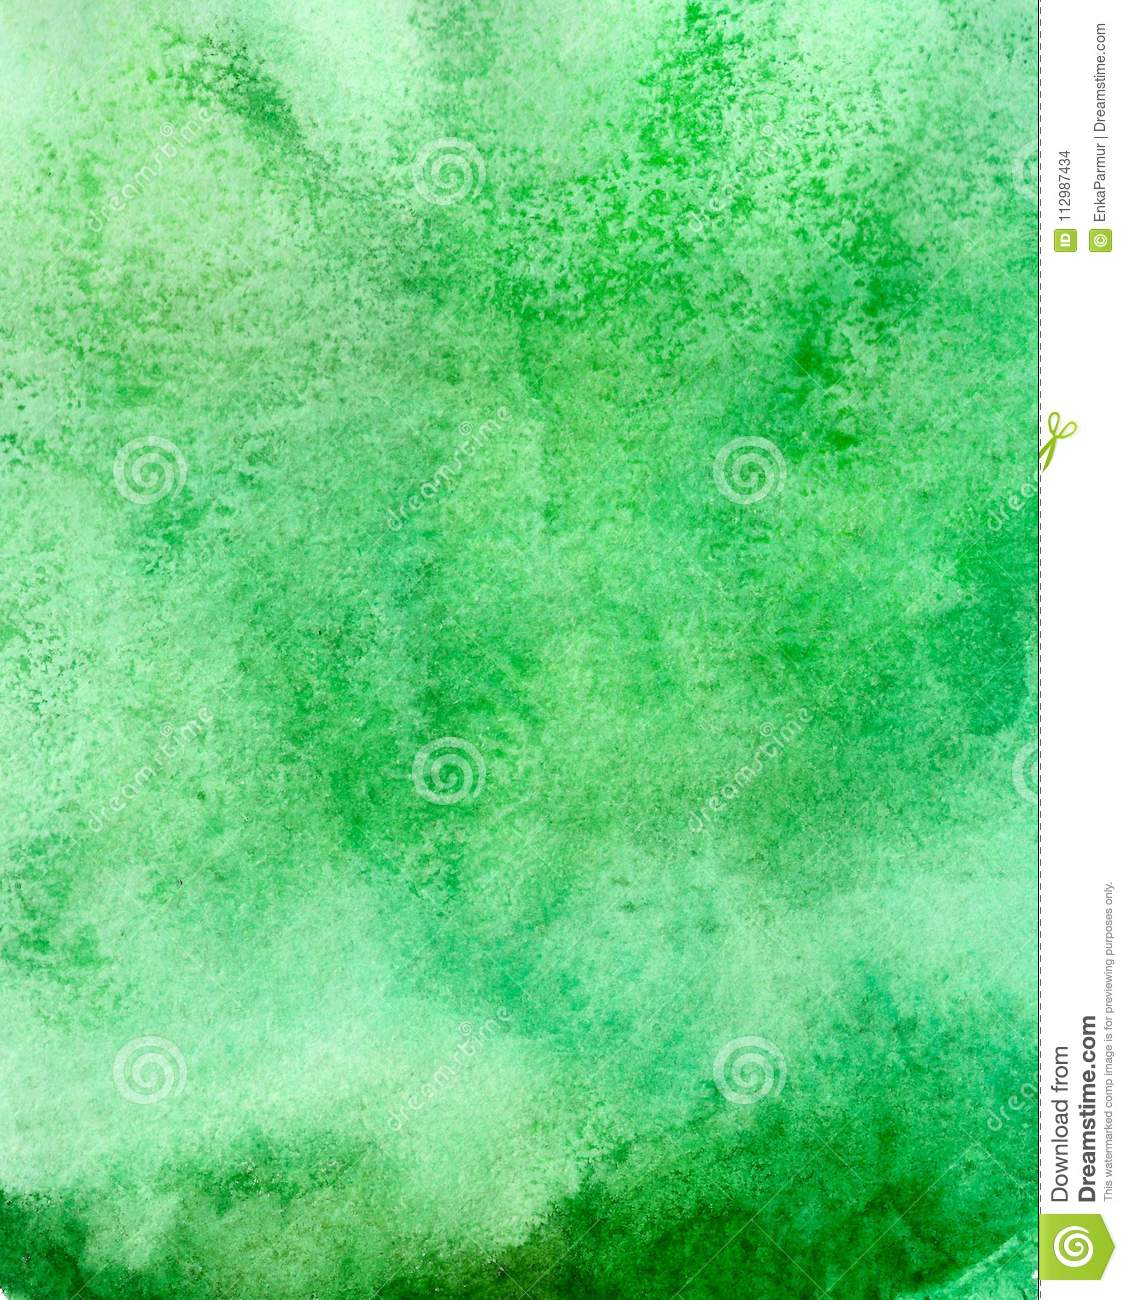 Abstract acrylic painted empty background. Green watercolor texture. Grunge template for your design.